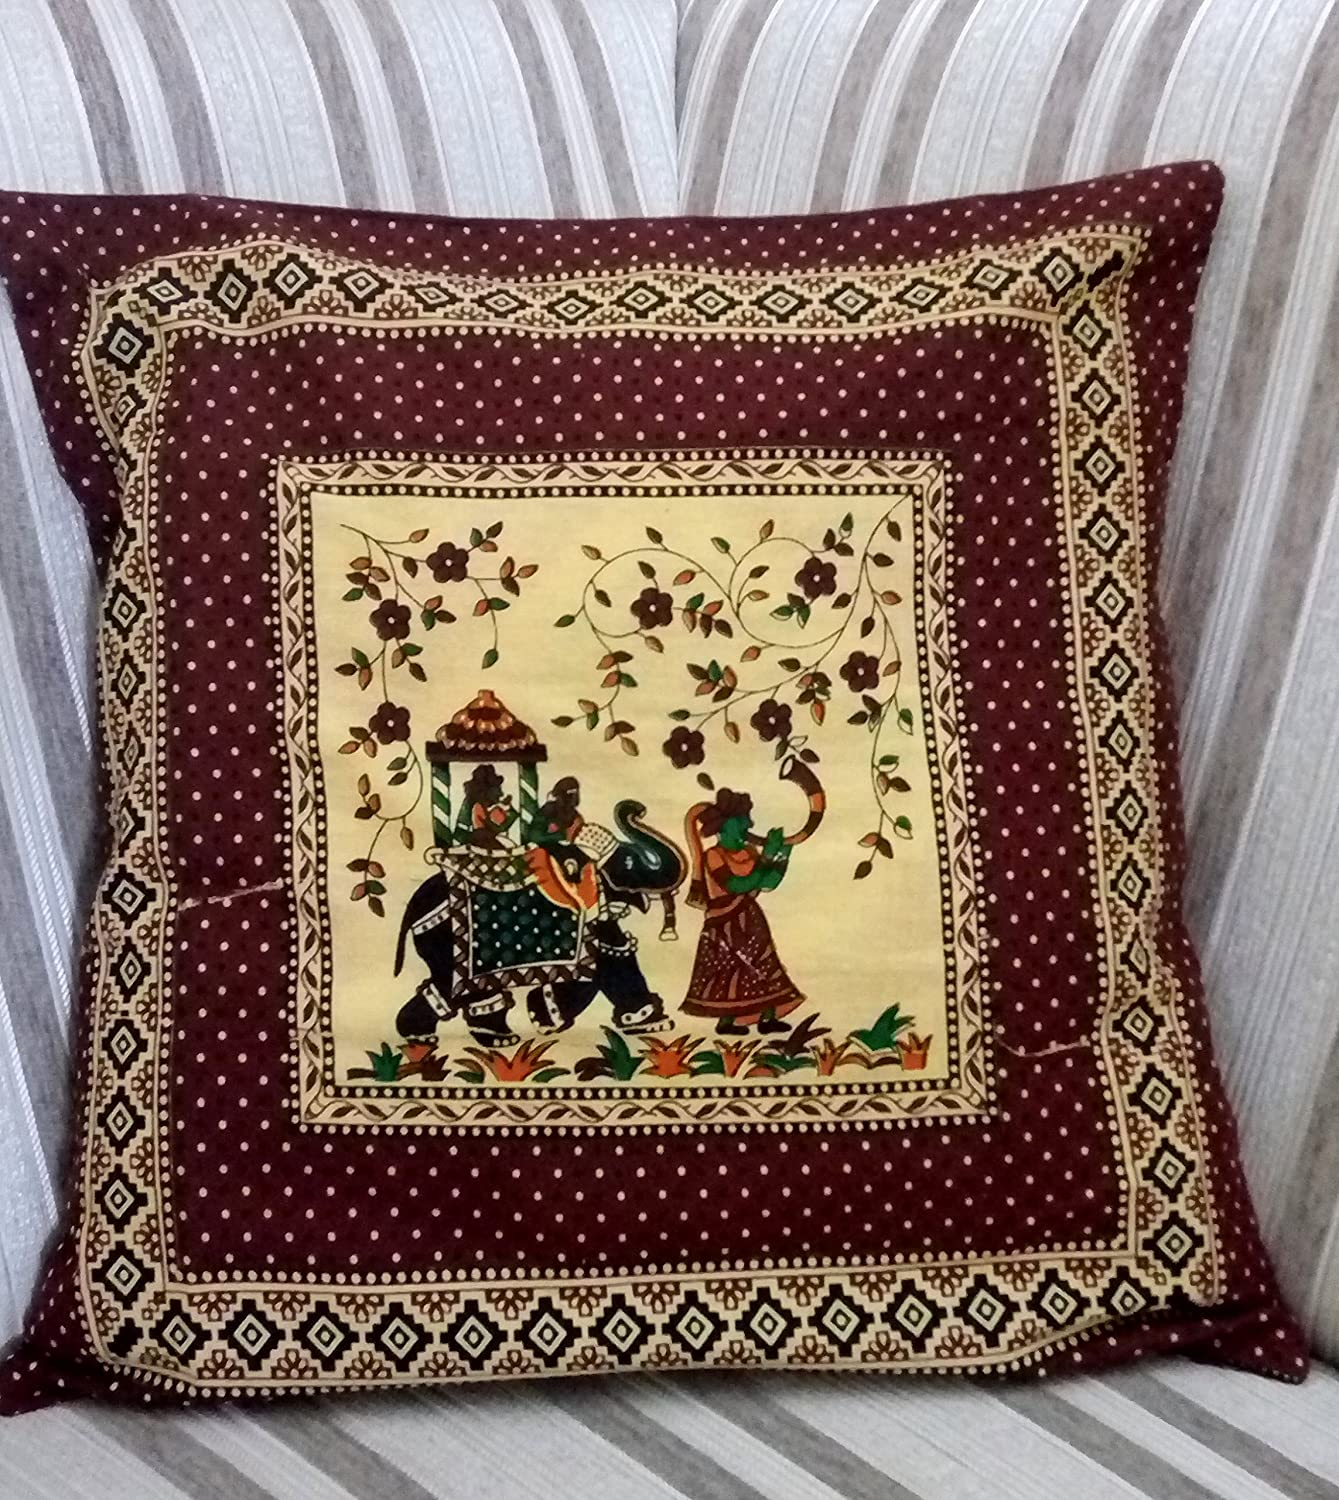 Cushion Cover Size 16x16 Inches King Sitting Over The Elephant Griiham Brown Rajasthani Palace Print Traditional Indian Print 40 x40 Cm With Flaps